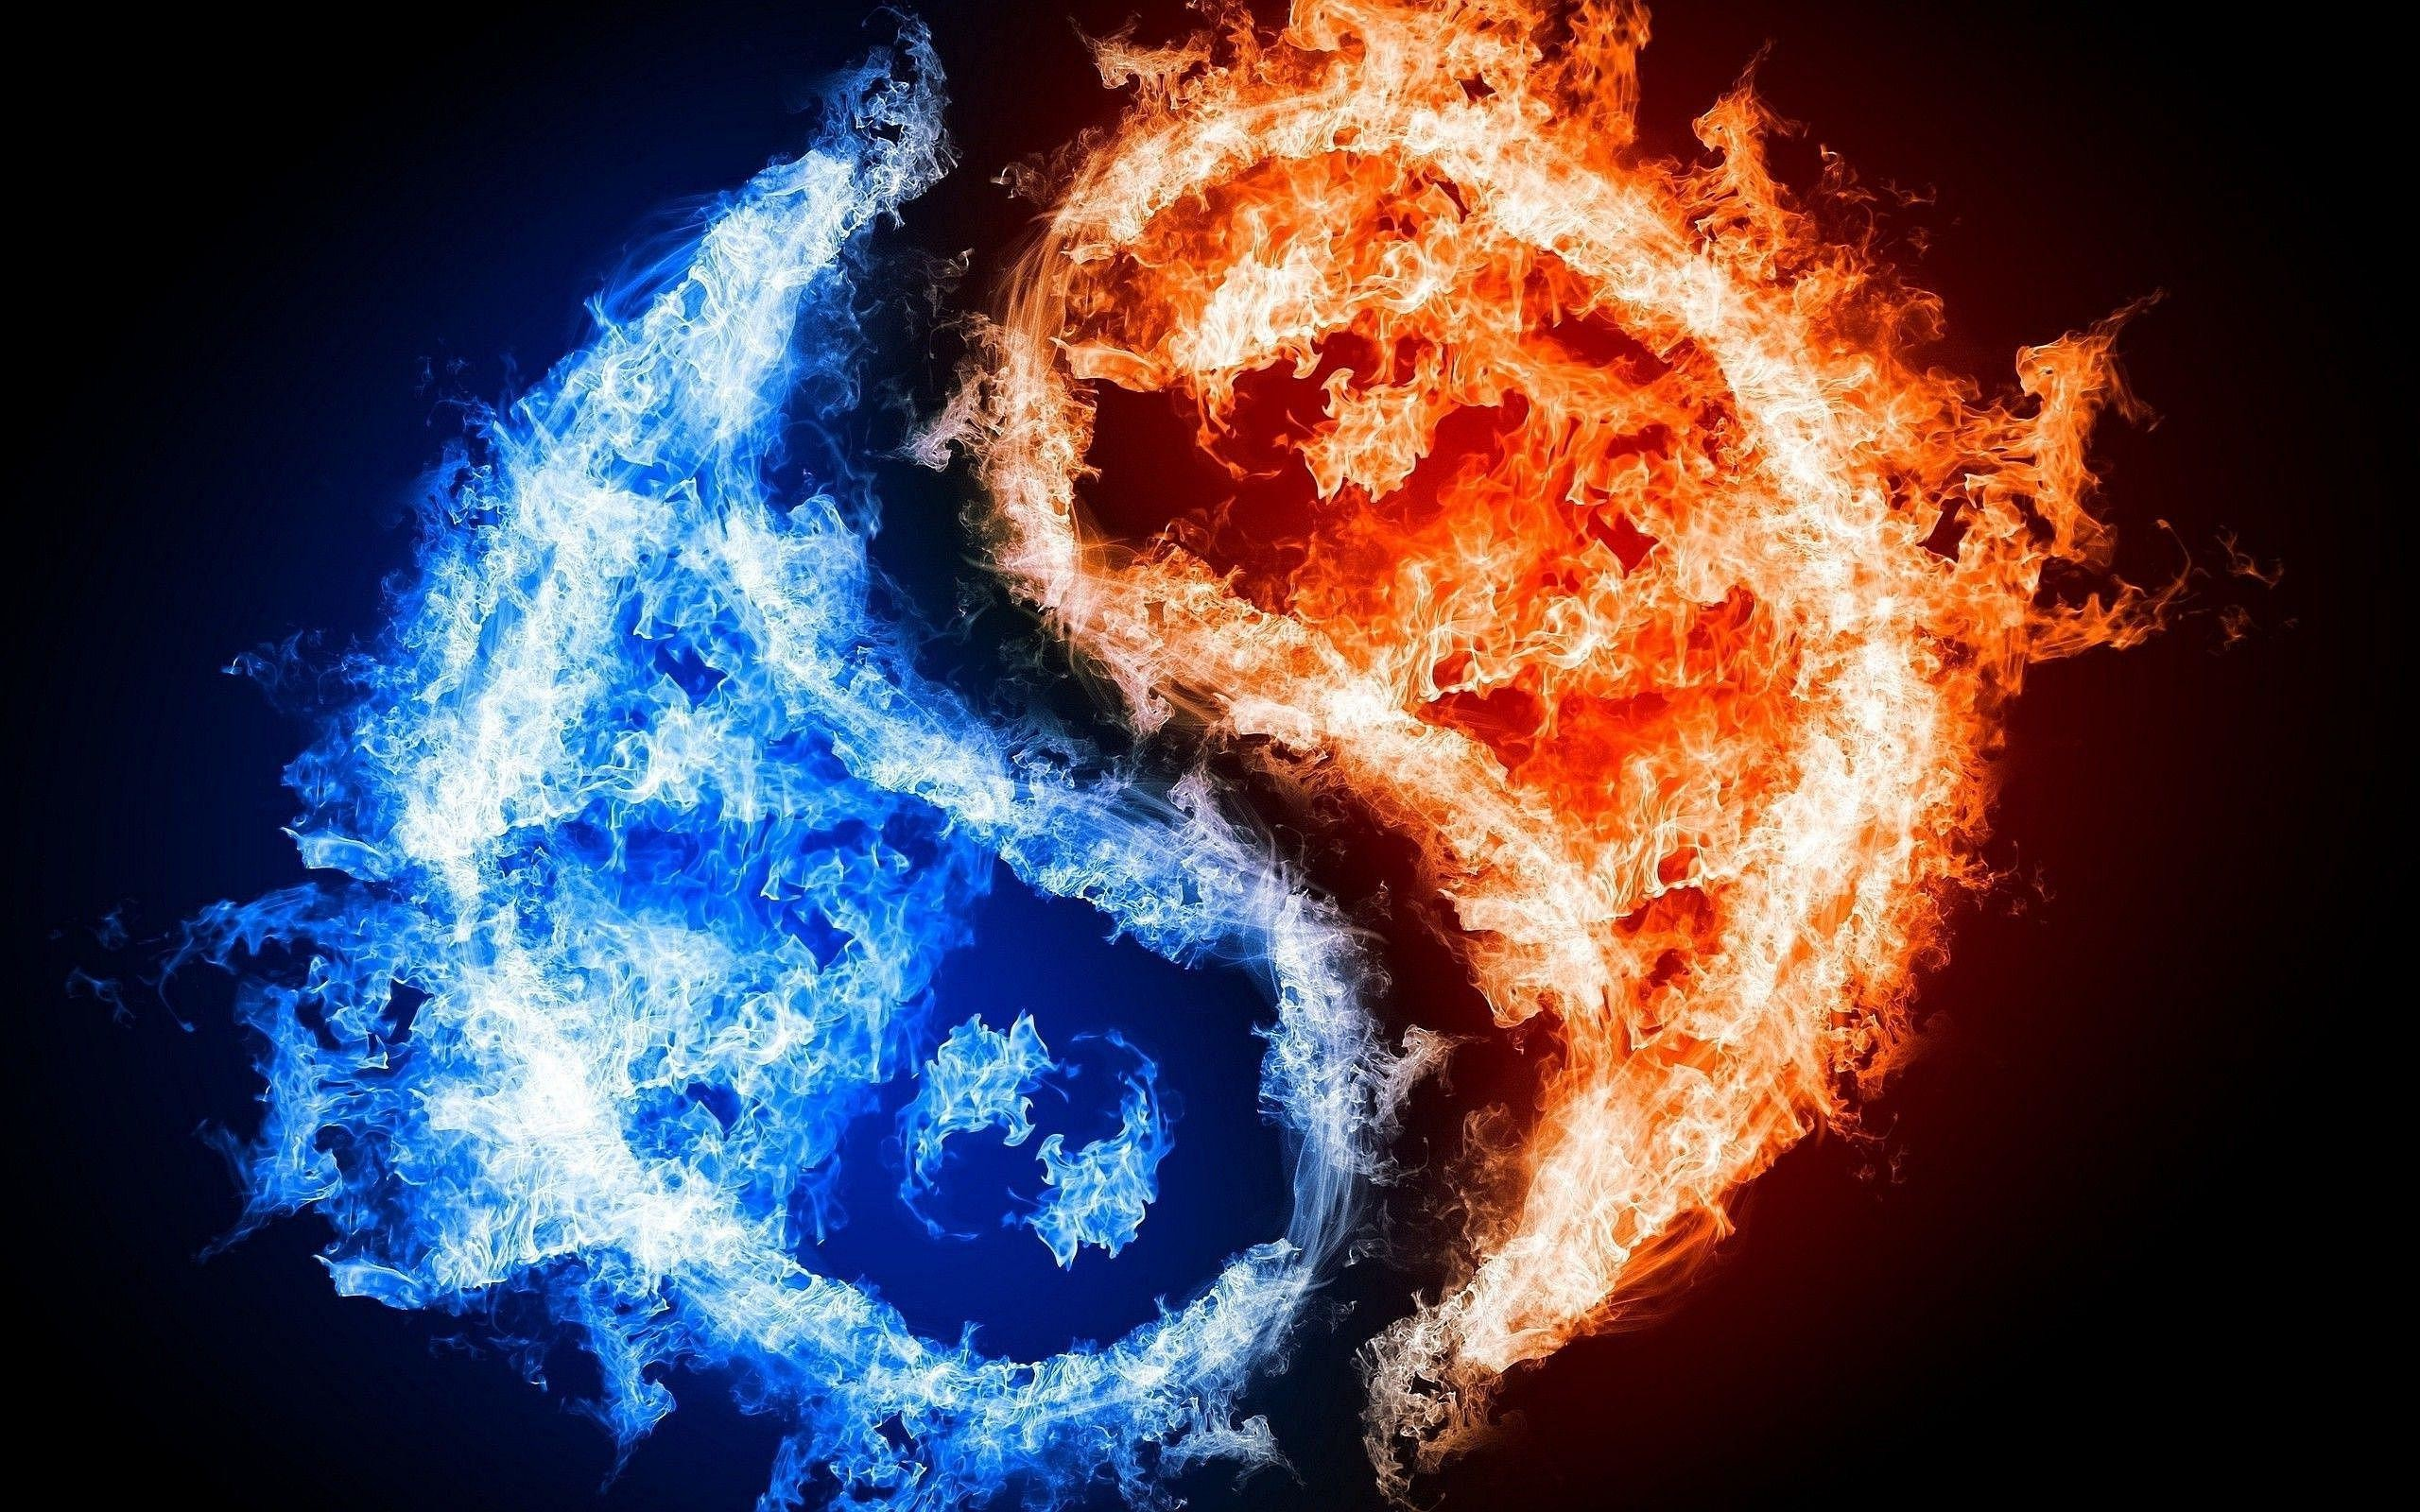 Cool Fire And Ice Wallpapers 74 Images